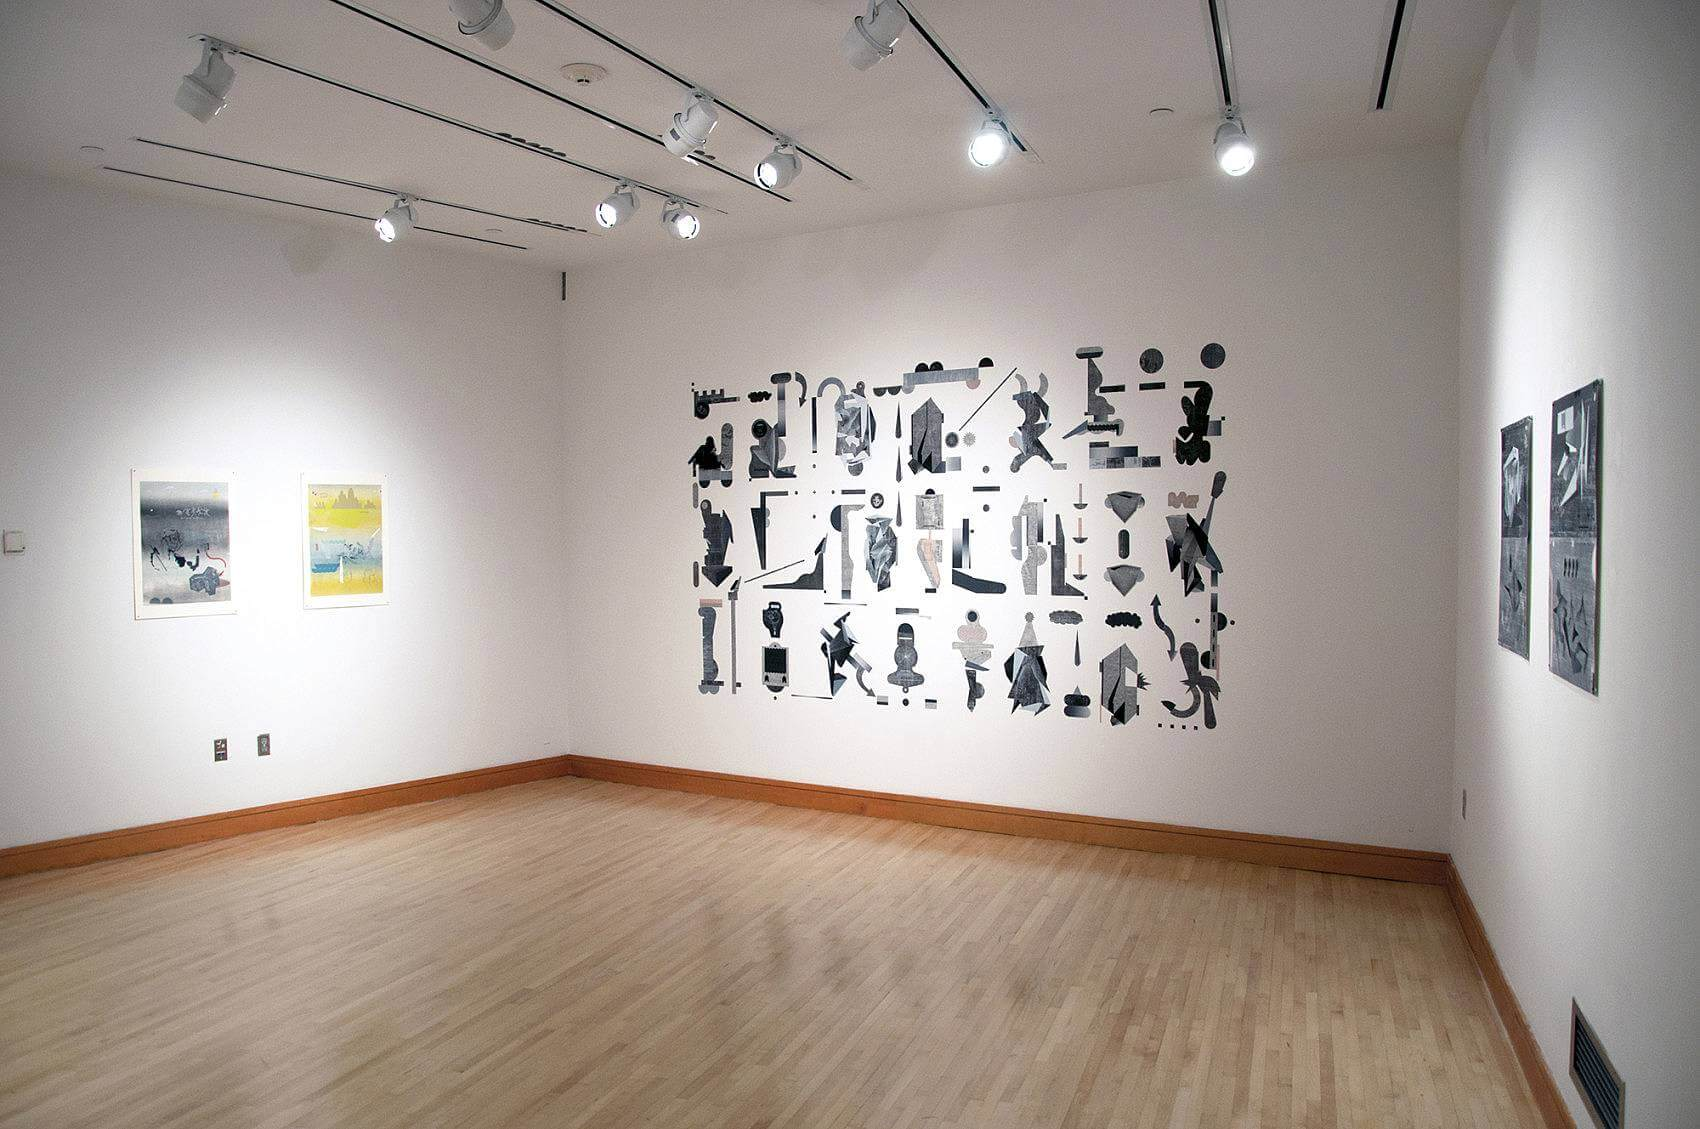 Exhibition View, Just A Simulation, Edith Smith Gallery, Grinnell College 2015